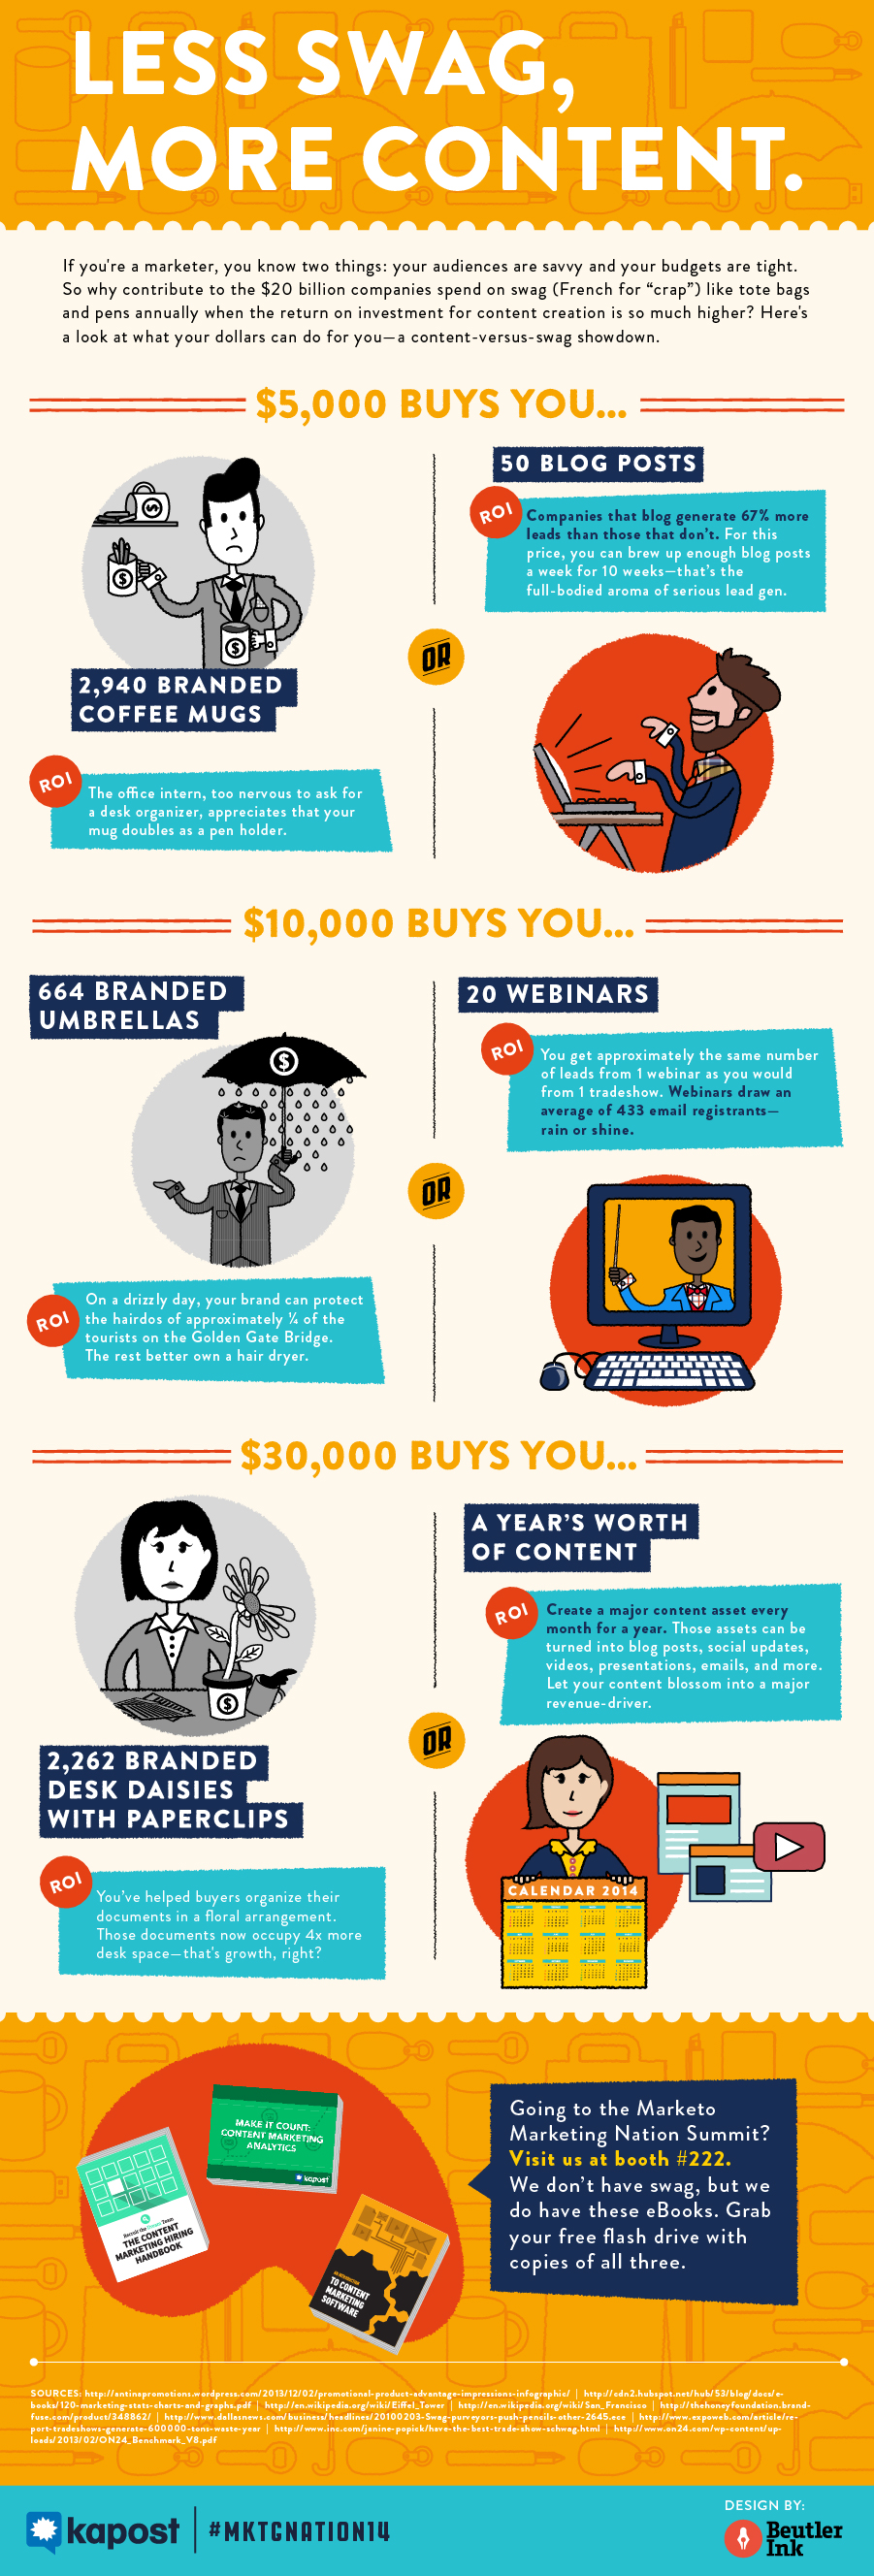 Why You Should Invest in Less Swag and More Content [INFOGRAPHIC]